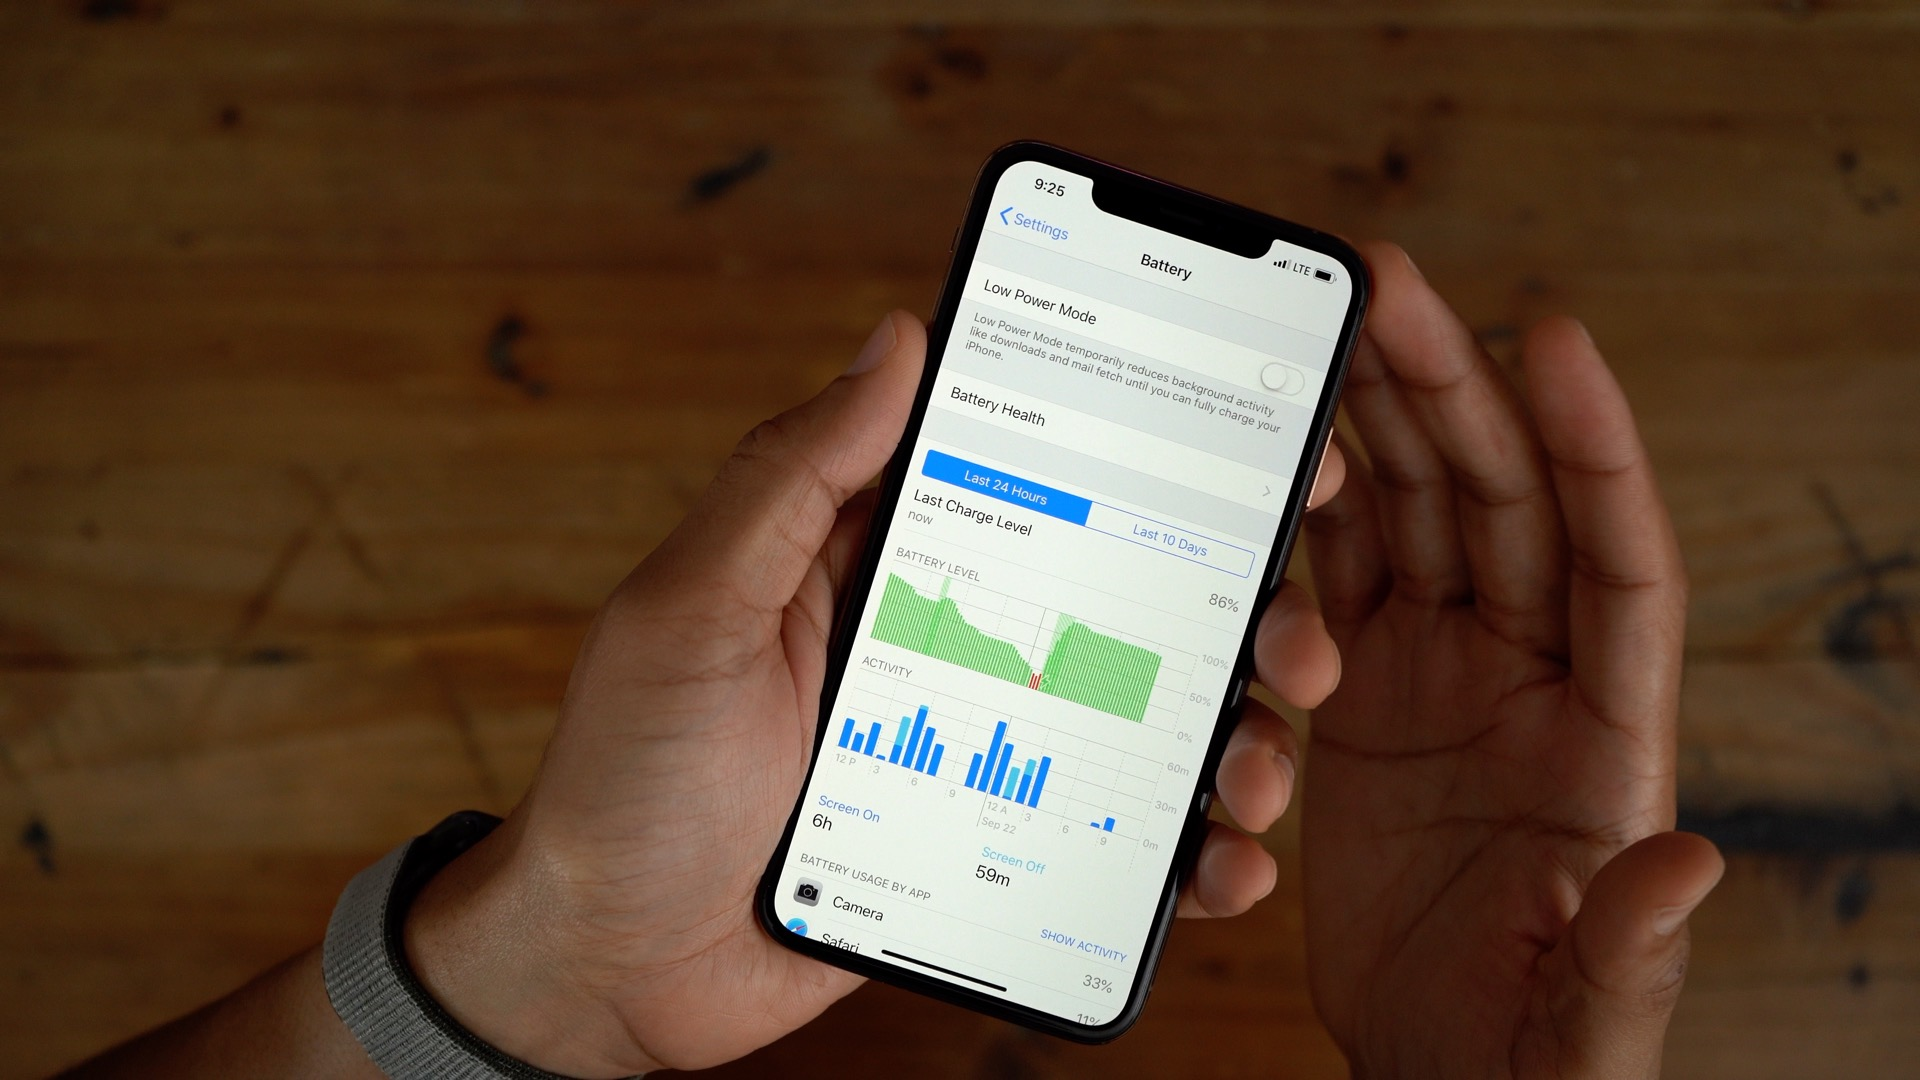 iphone xs max battery life crushed by samsung note 9 galaxy in test